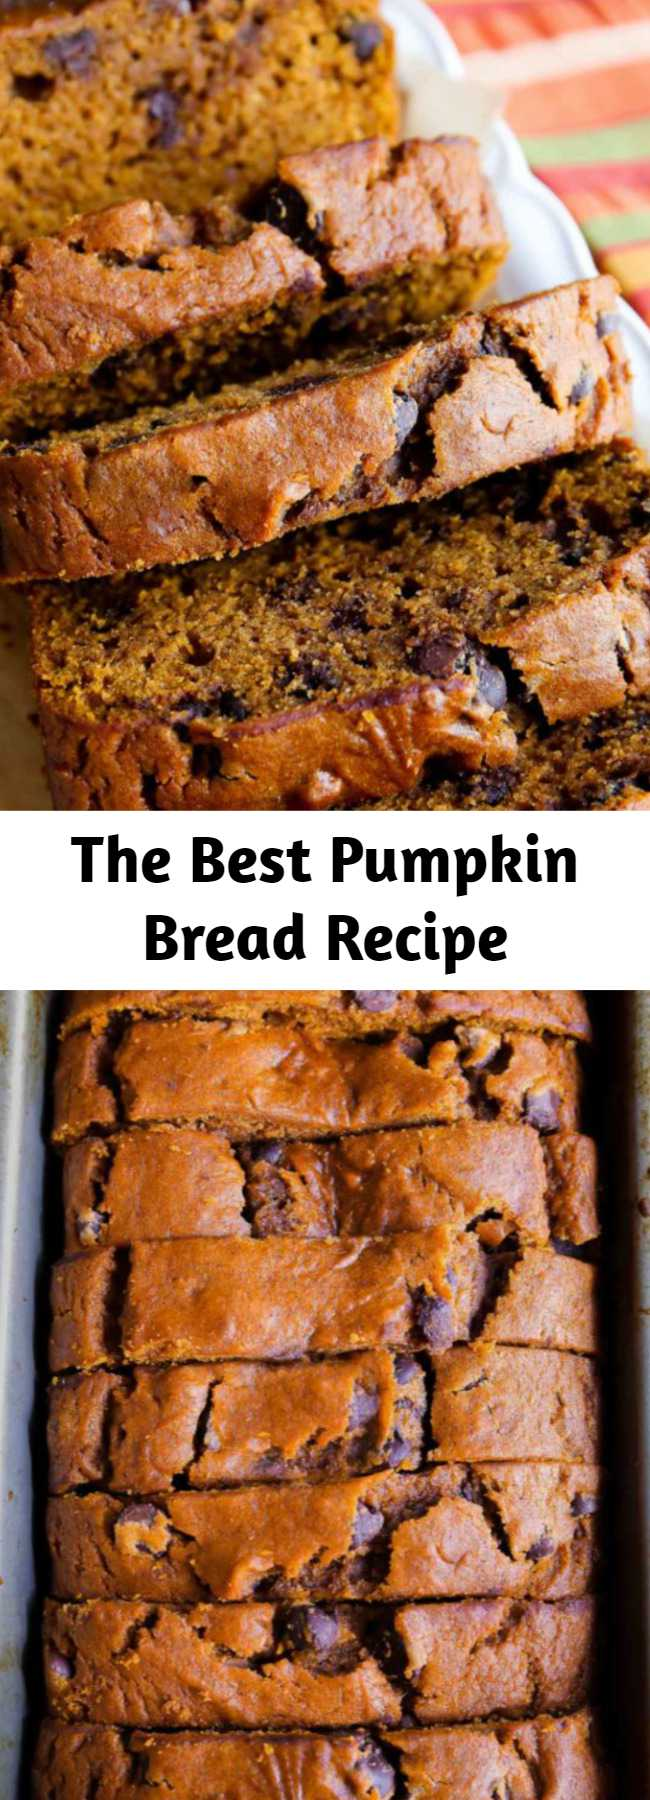 The Best Pumpkin Bread Recipe - Homemade pumpkin bread is a favorite fall recipe packed with sweet cinnamon spice, chocolate chips, and tons of pumpkin flavor. The days of bland pumpkin bread are behind us!